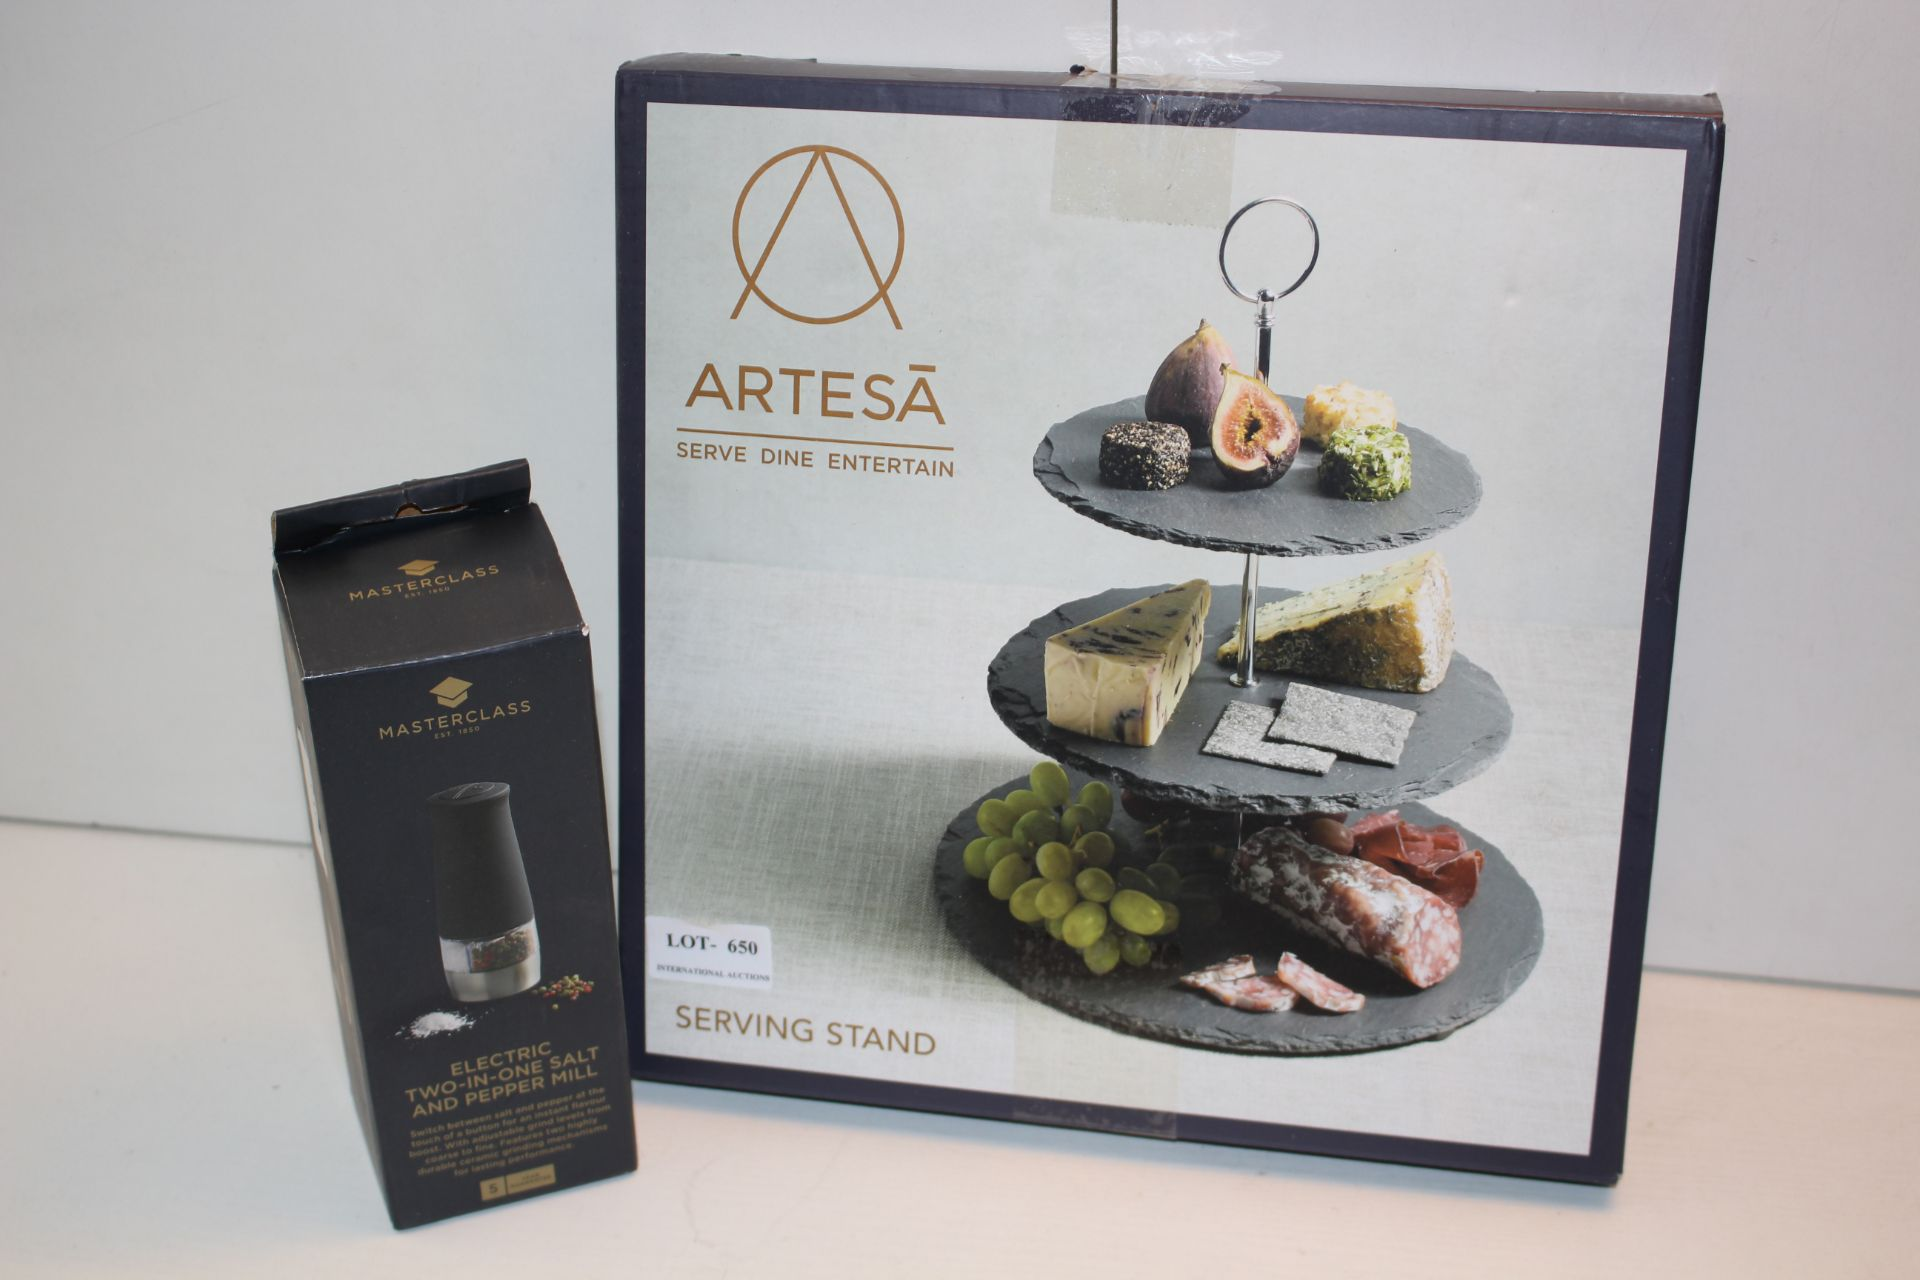 X2 BOXED ITEMS INCLUDING ARTESA SERVING STAND AND MASTYER CLASS TWO IN ONE SALT AND PEPPER